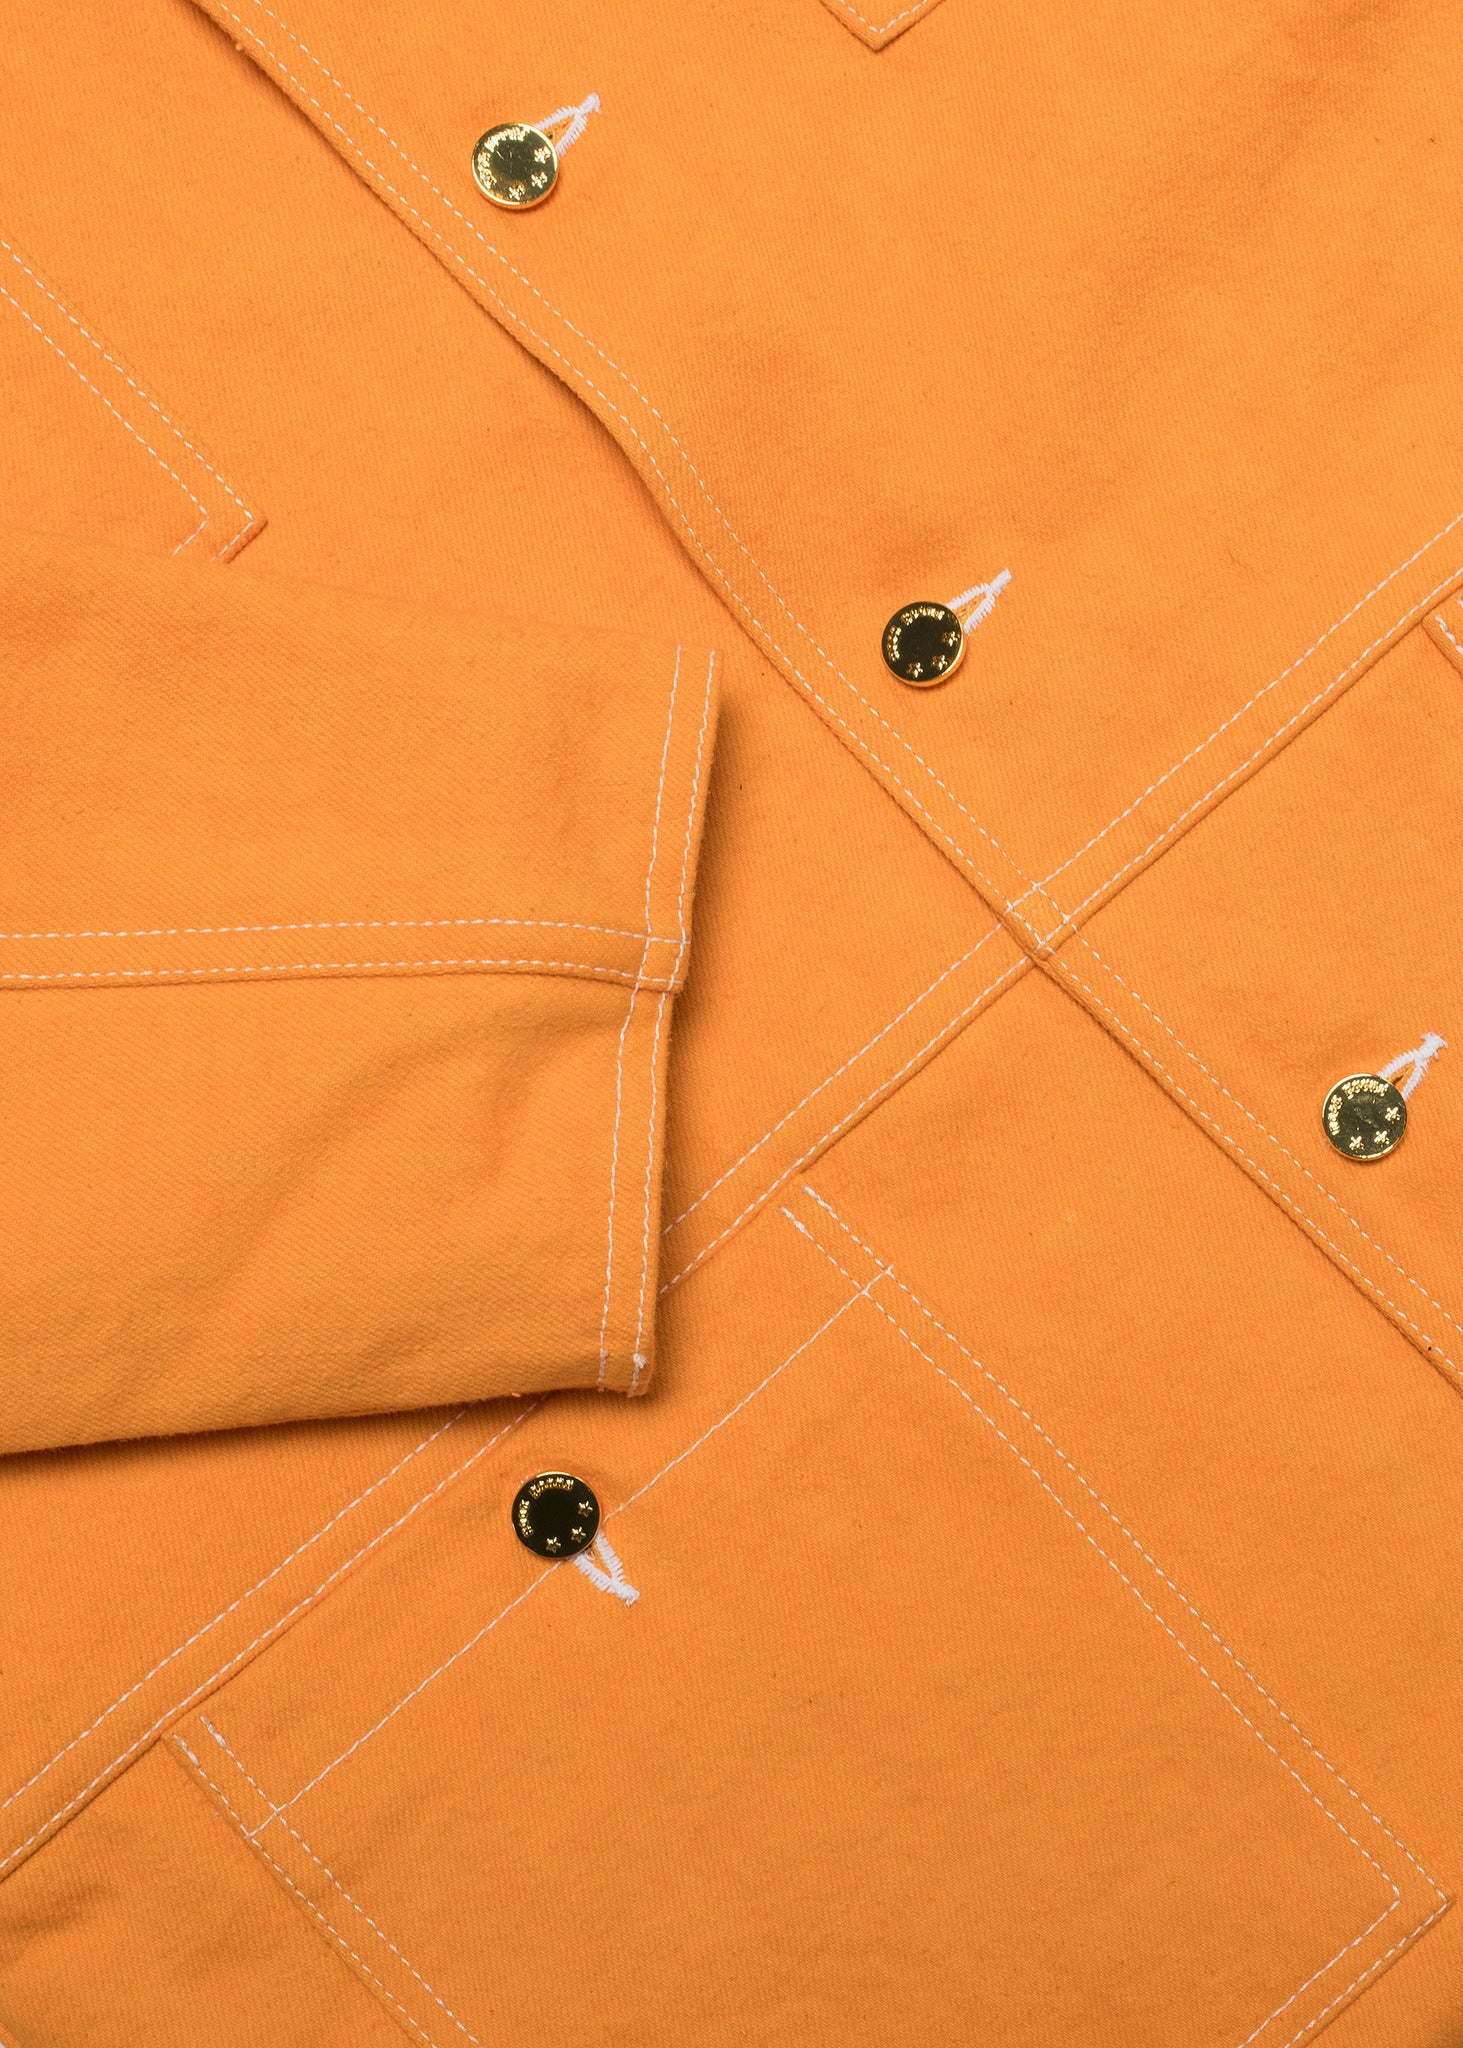 Oxnard Chore Coat - Orange